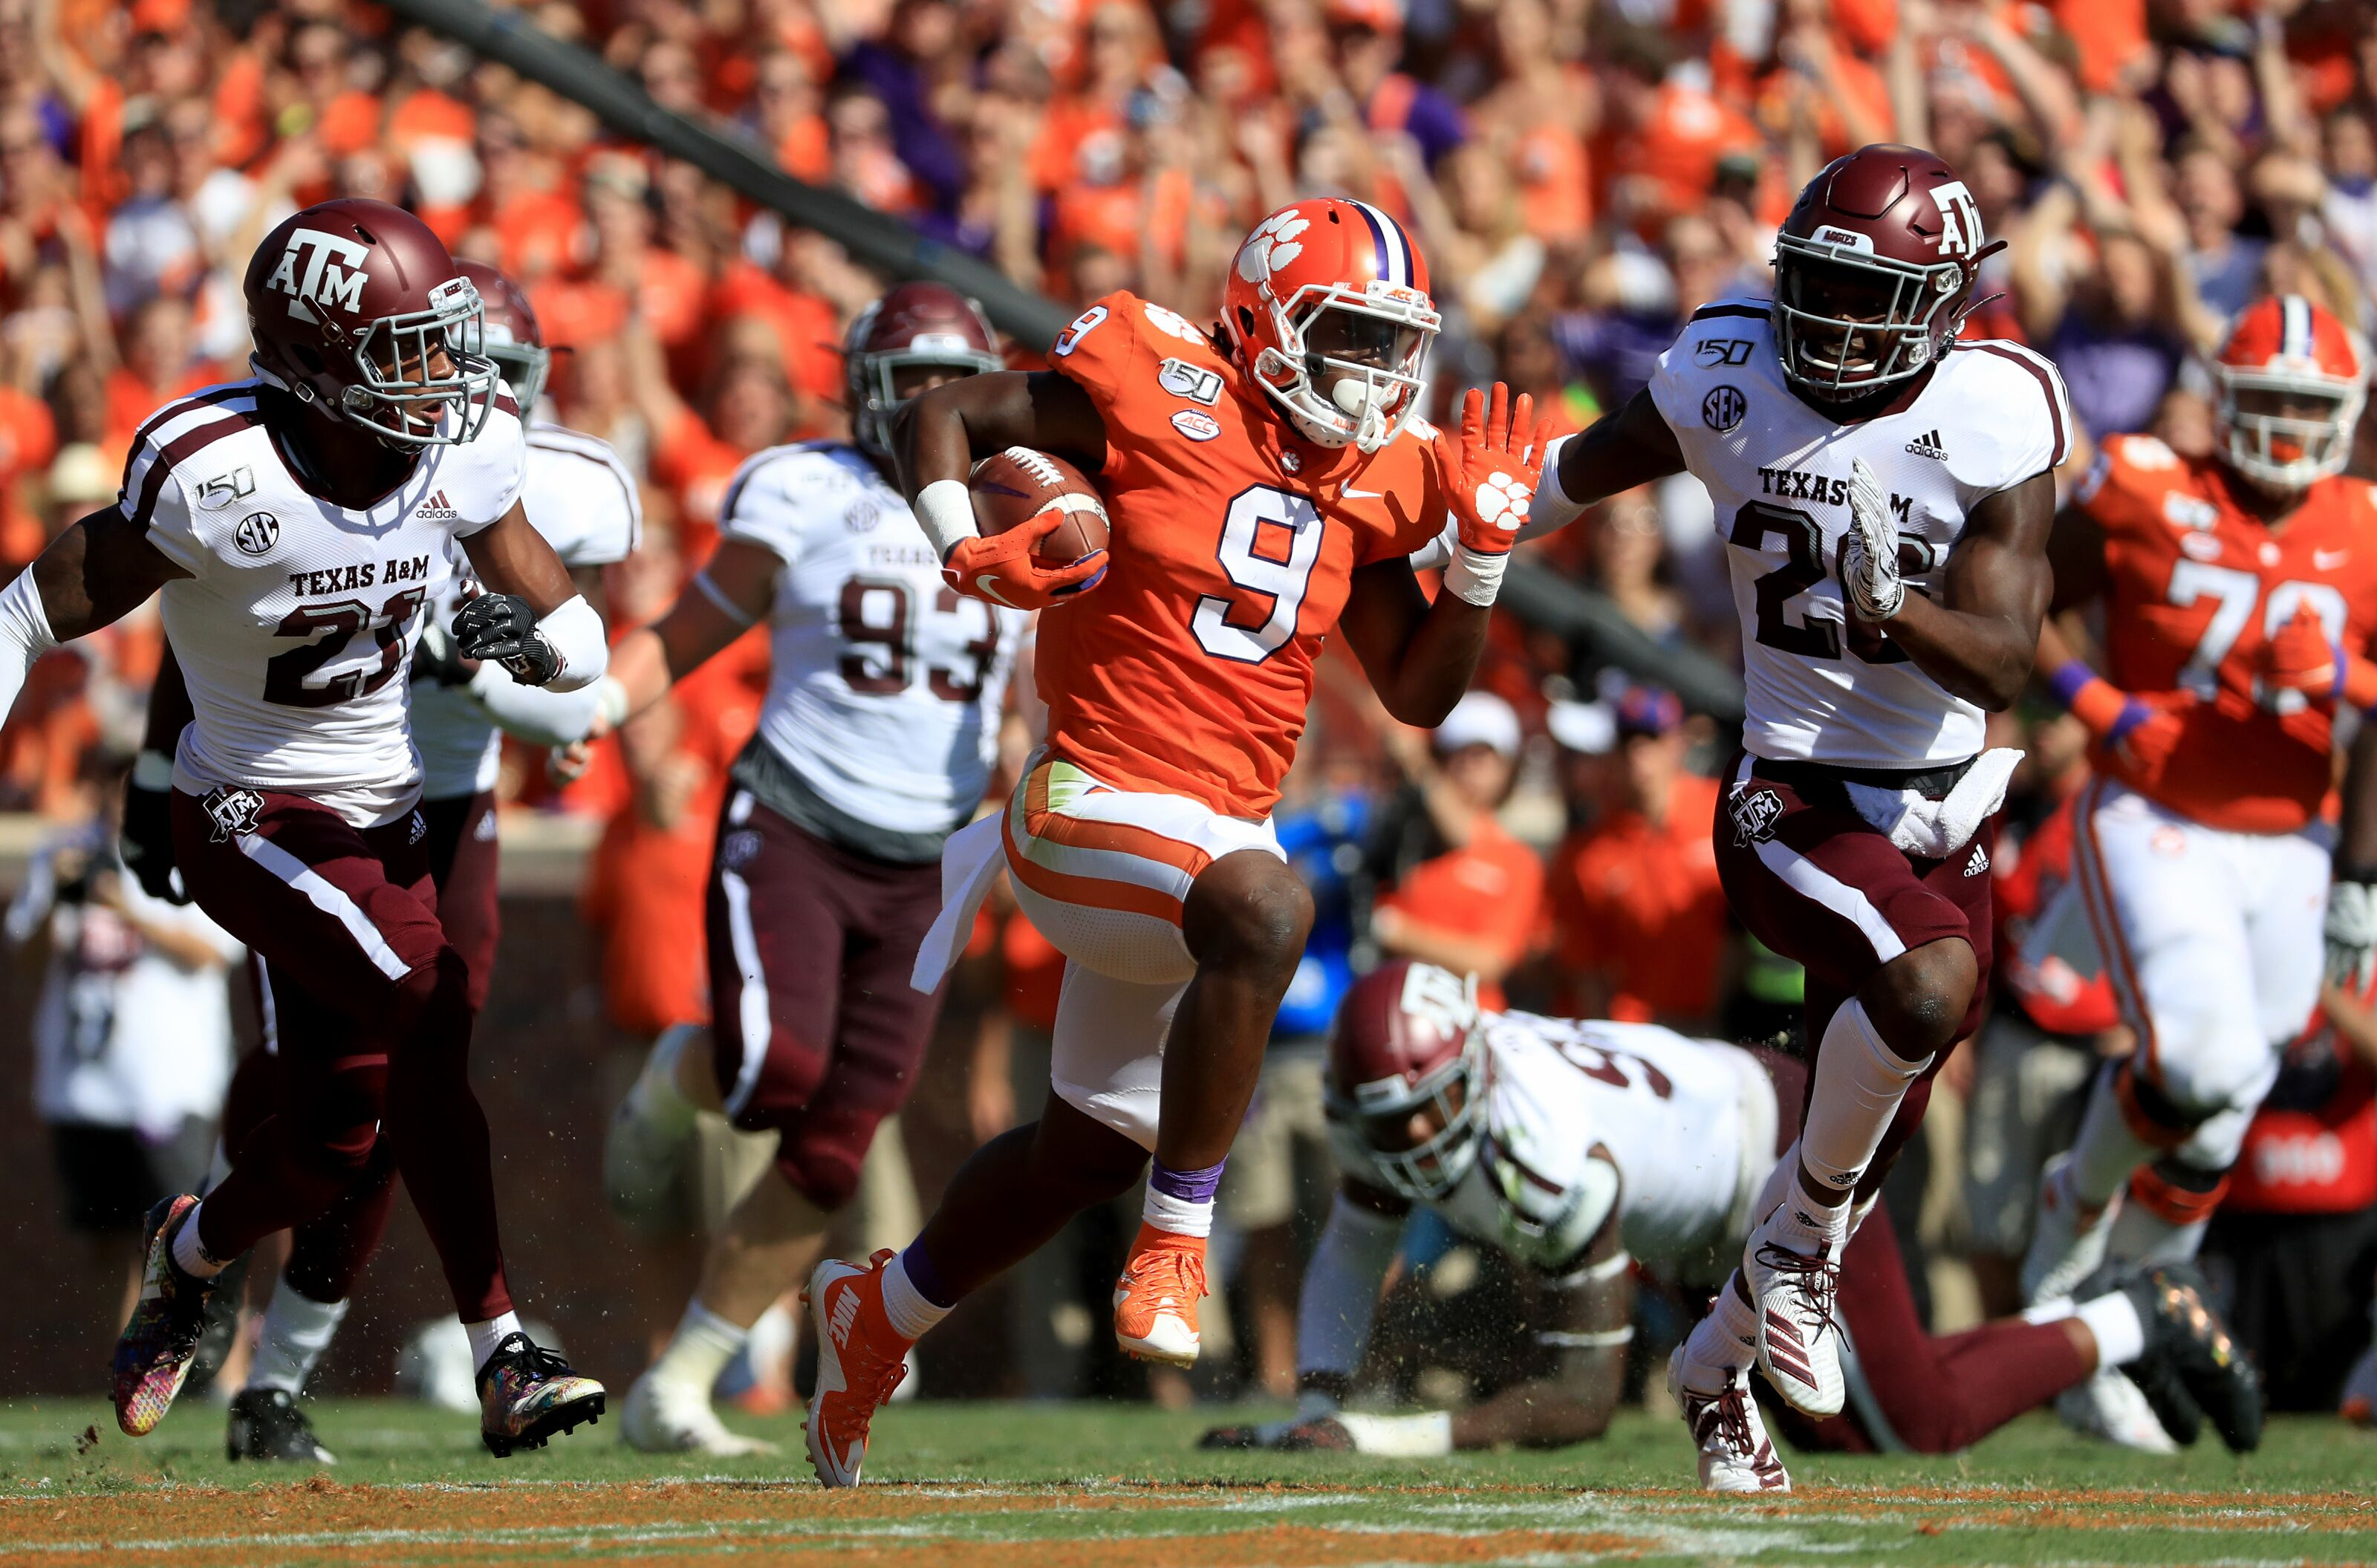 clemson vs syracuse - photo #26